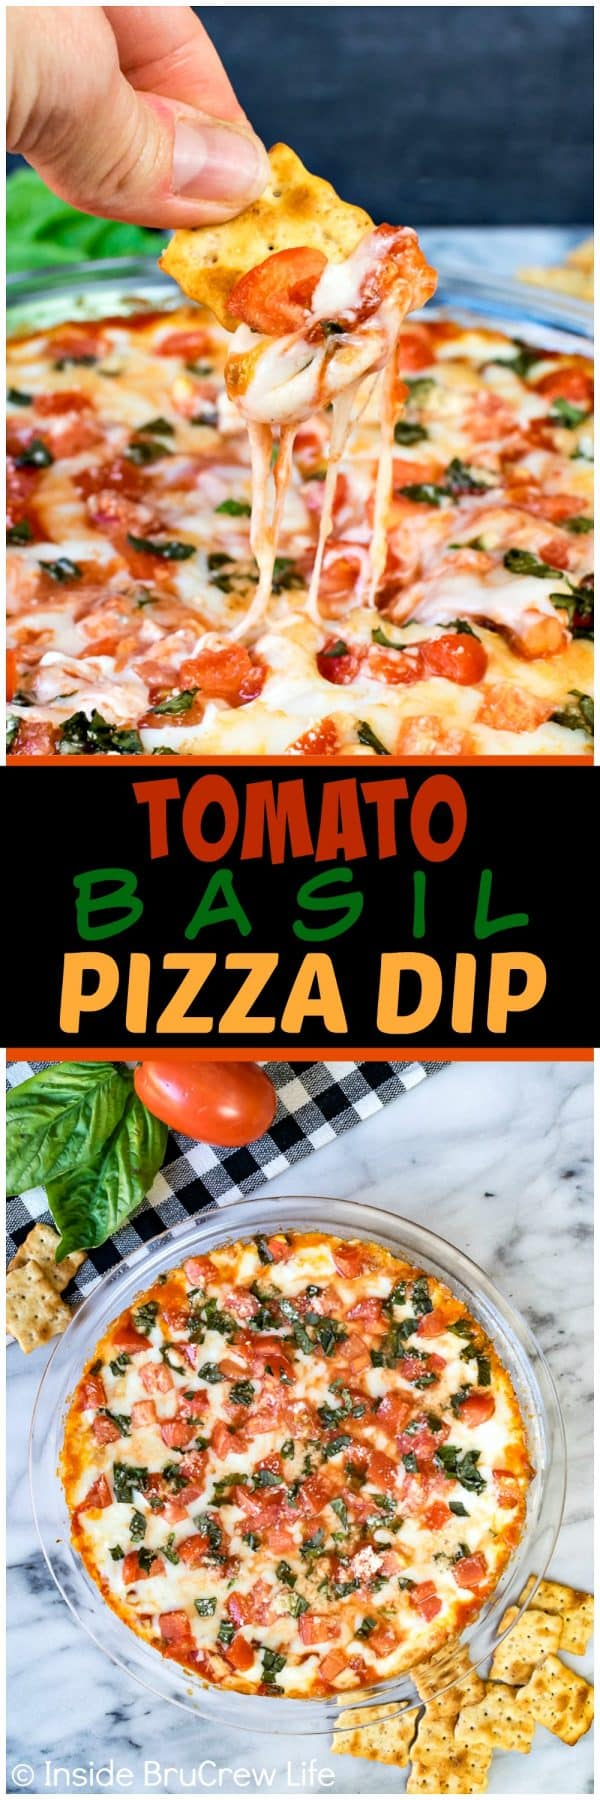 Tomato Basil Pizza Dip - gooey melted cheese loaded with fresh tomatoes and basil makes a delicious pizza dip that will disappear in minutes. Great recipe for after school snacks or game day parties!